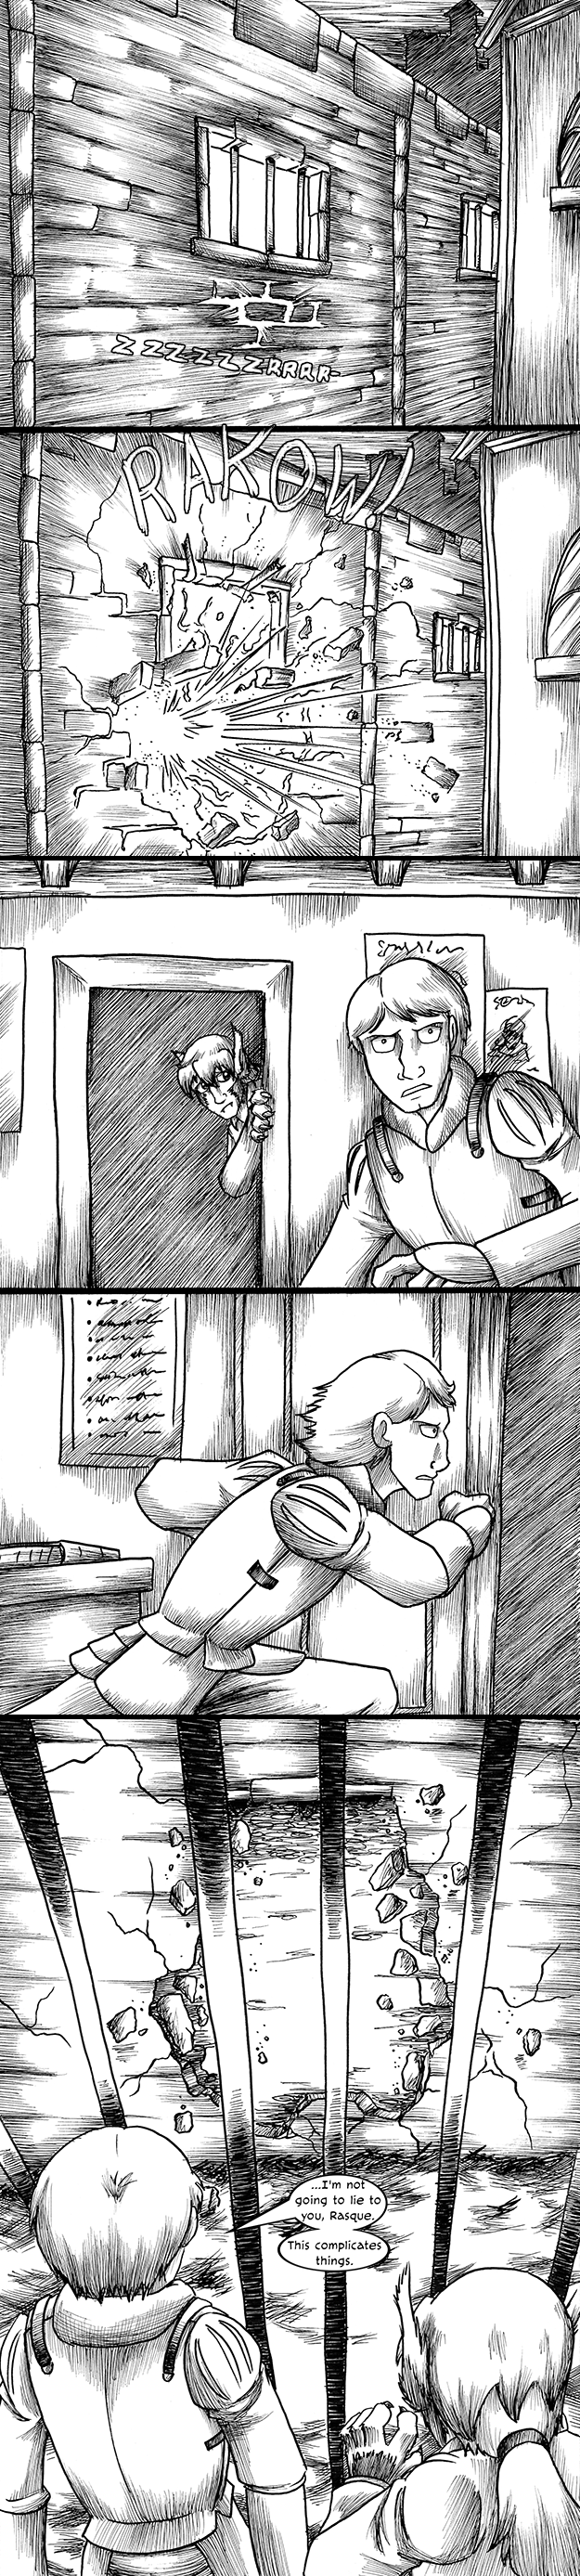 10 Page 17-19